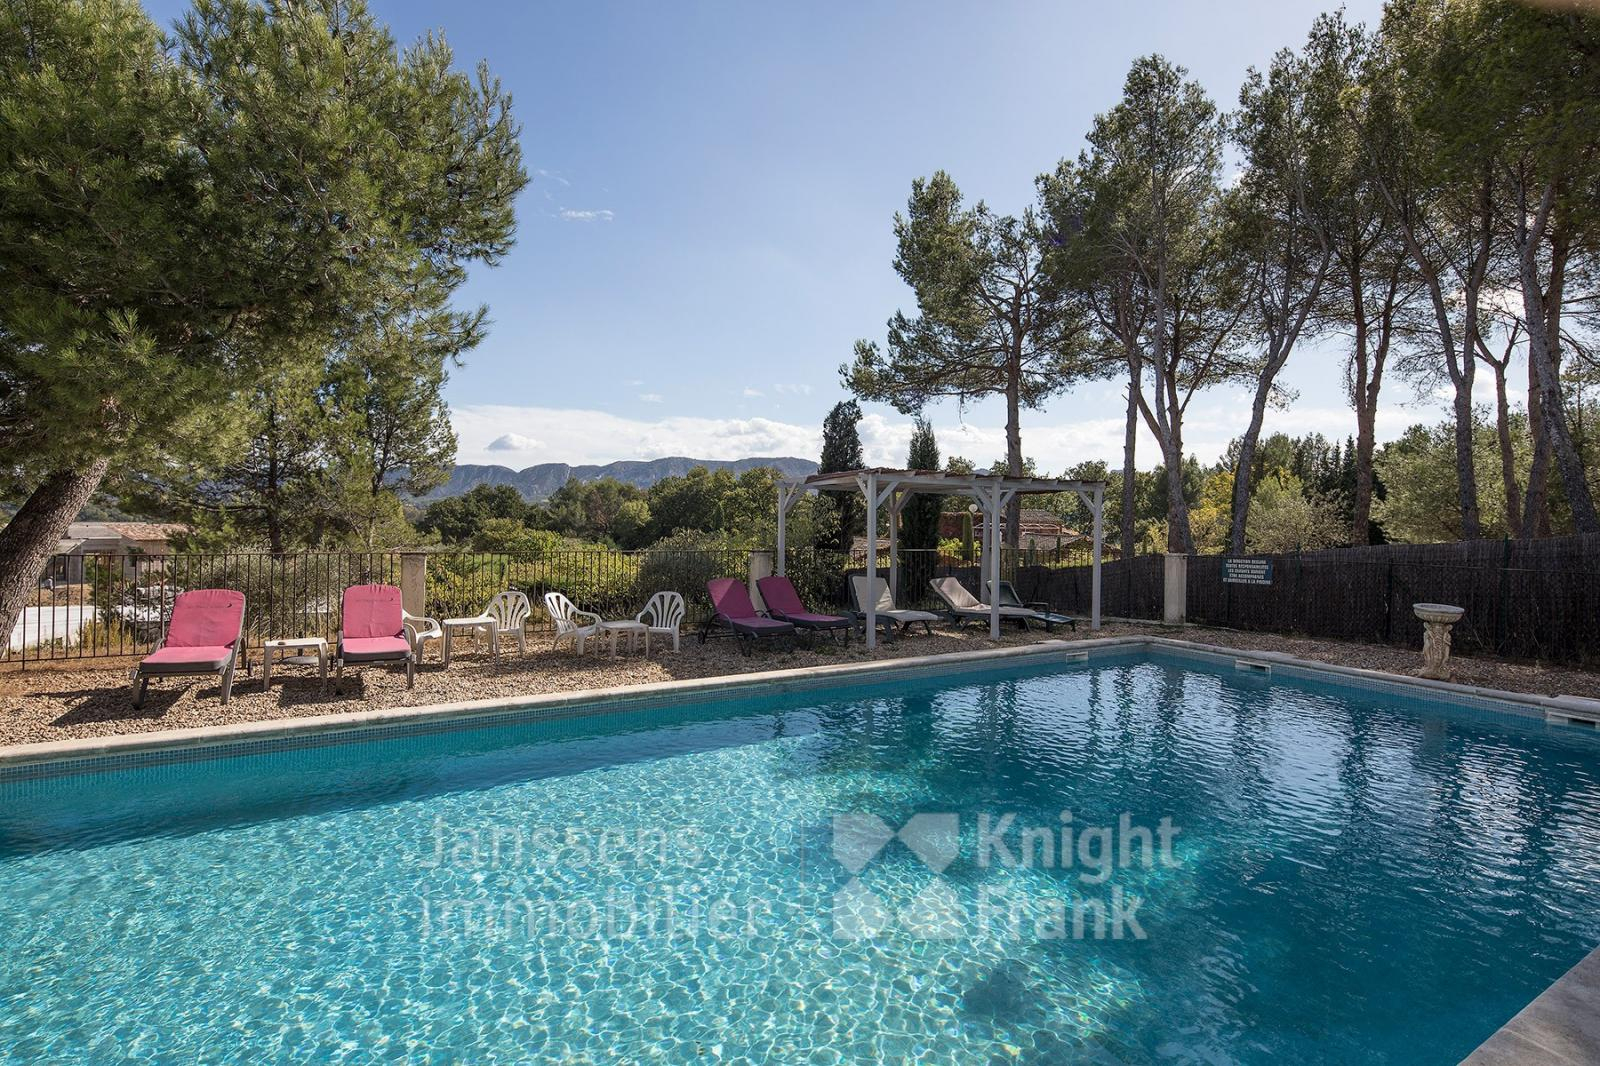 House With A View And Swimming Pool For Sale In Saint Rémy ... destiné Hotel Avec Piscine Ile De France